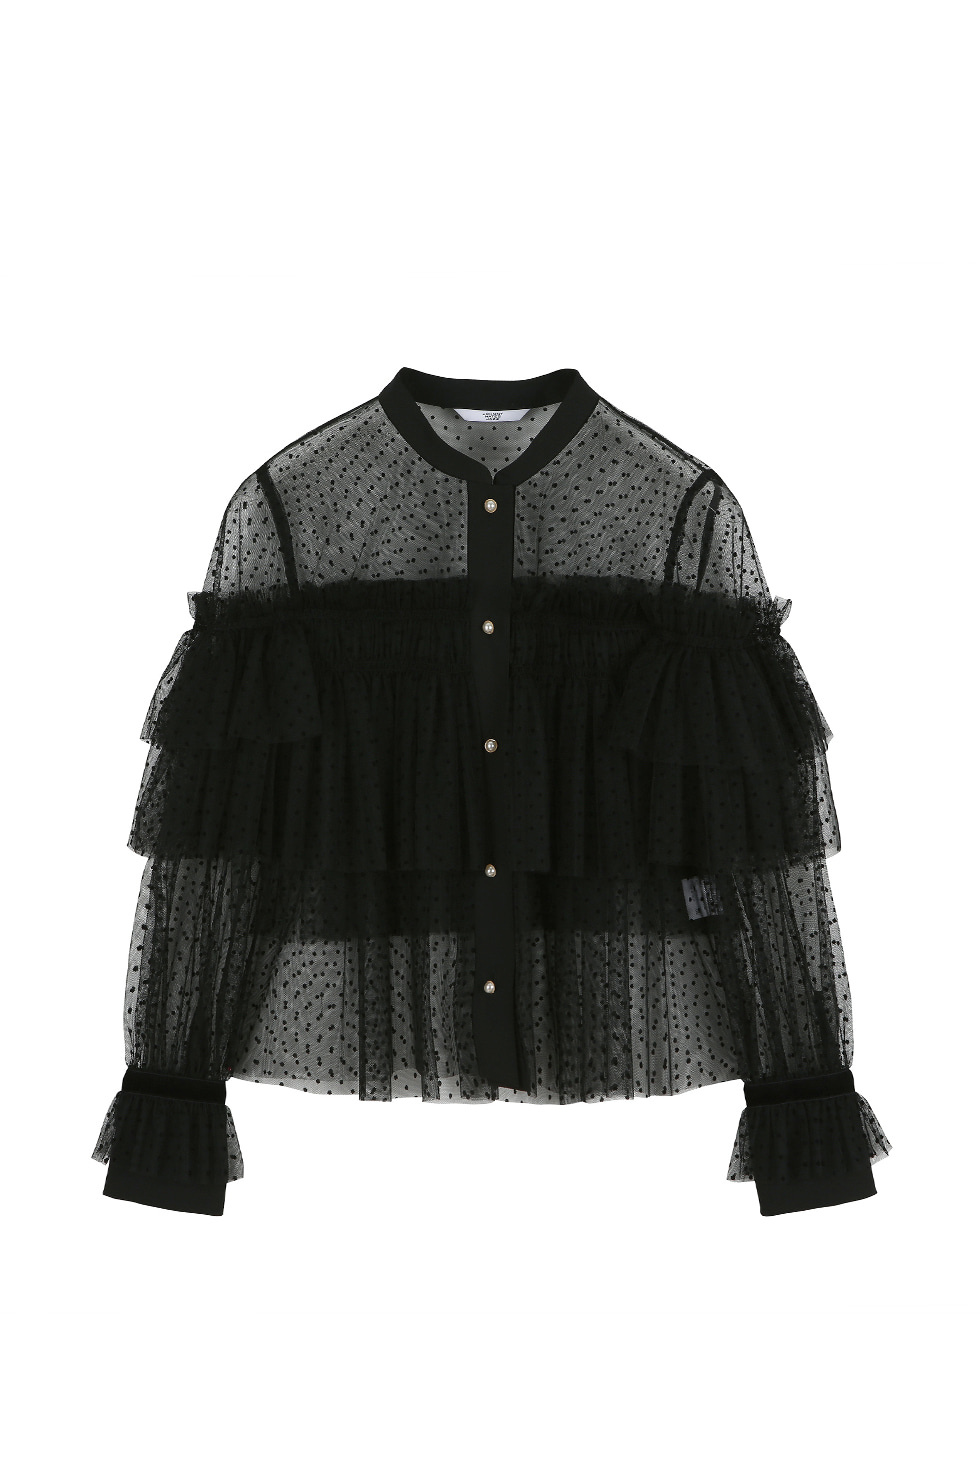 VELVET DOT TULLE BLOUSE - BLACK